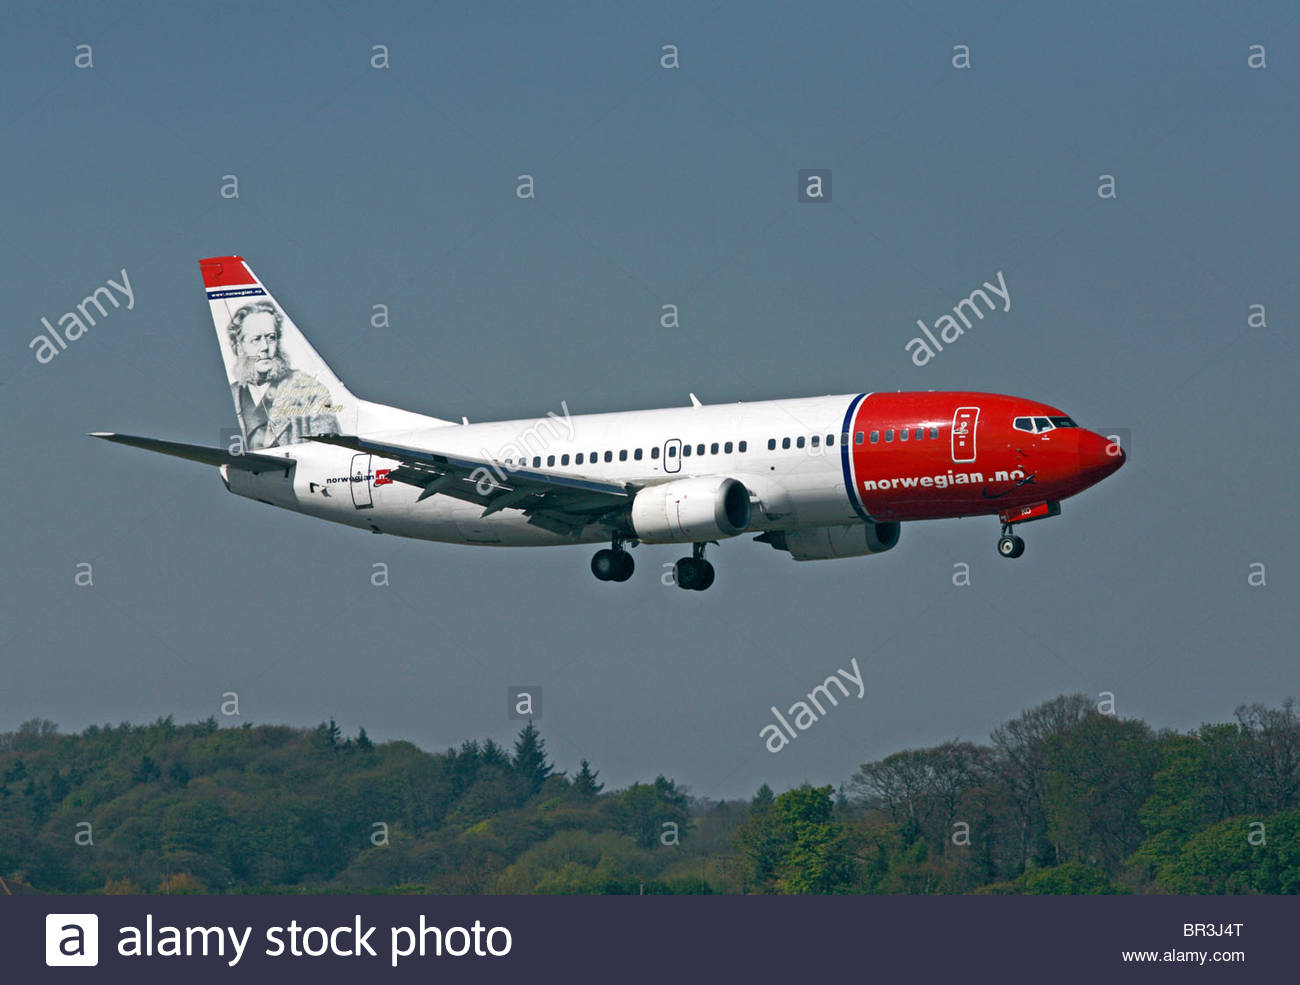 Norwegian Air Boeing 737 approaching runway Stock Photo